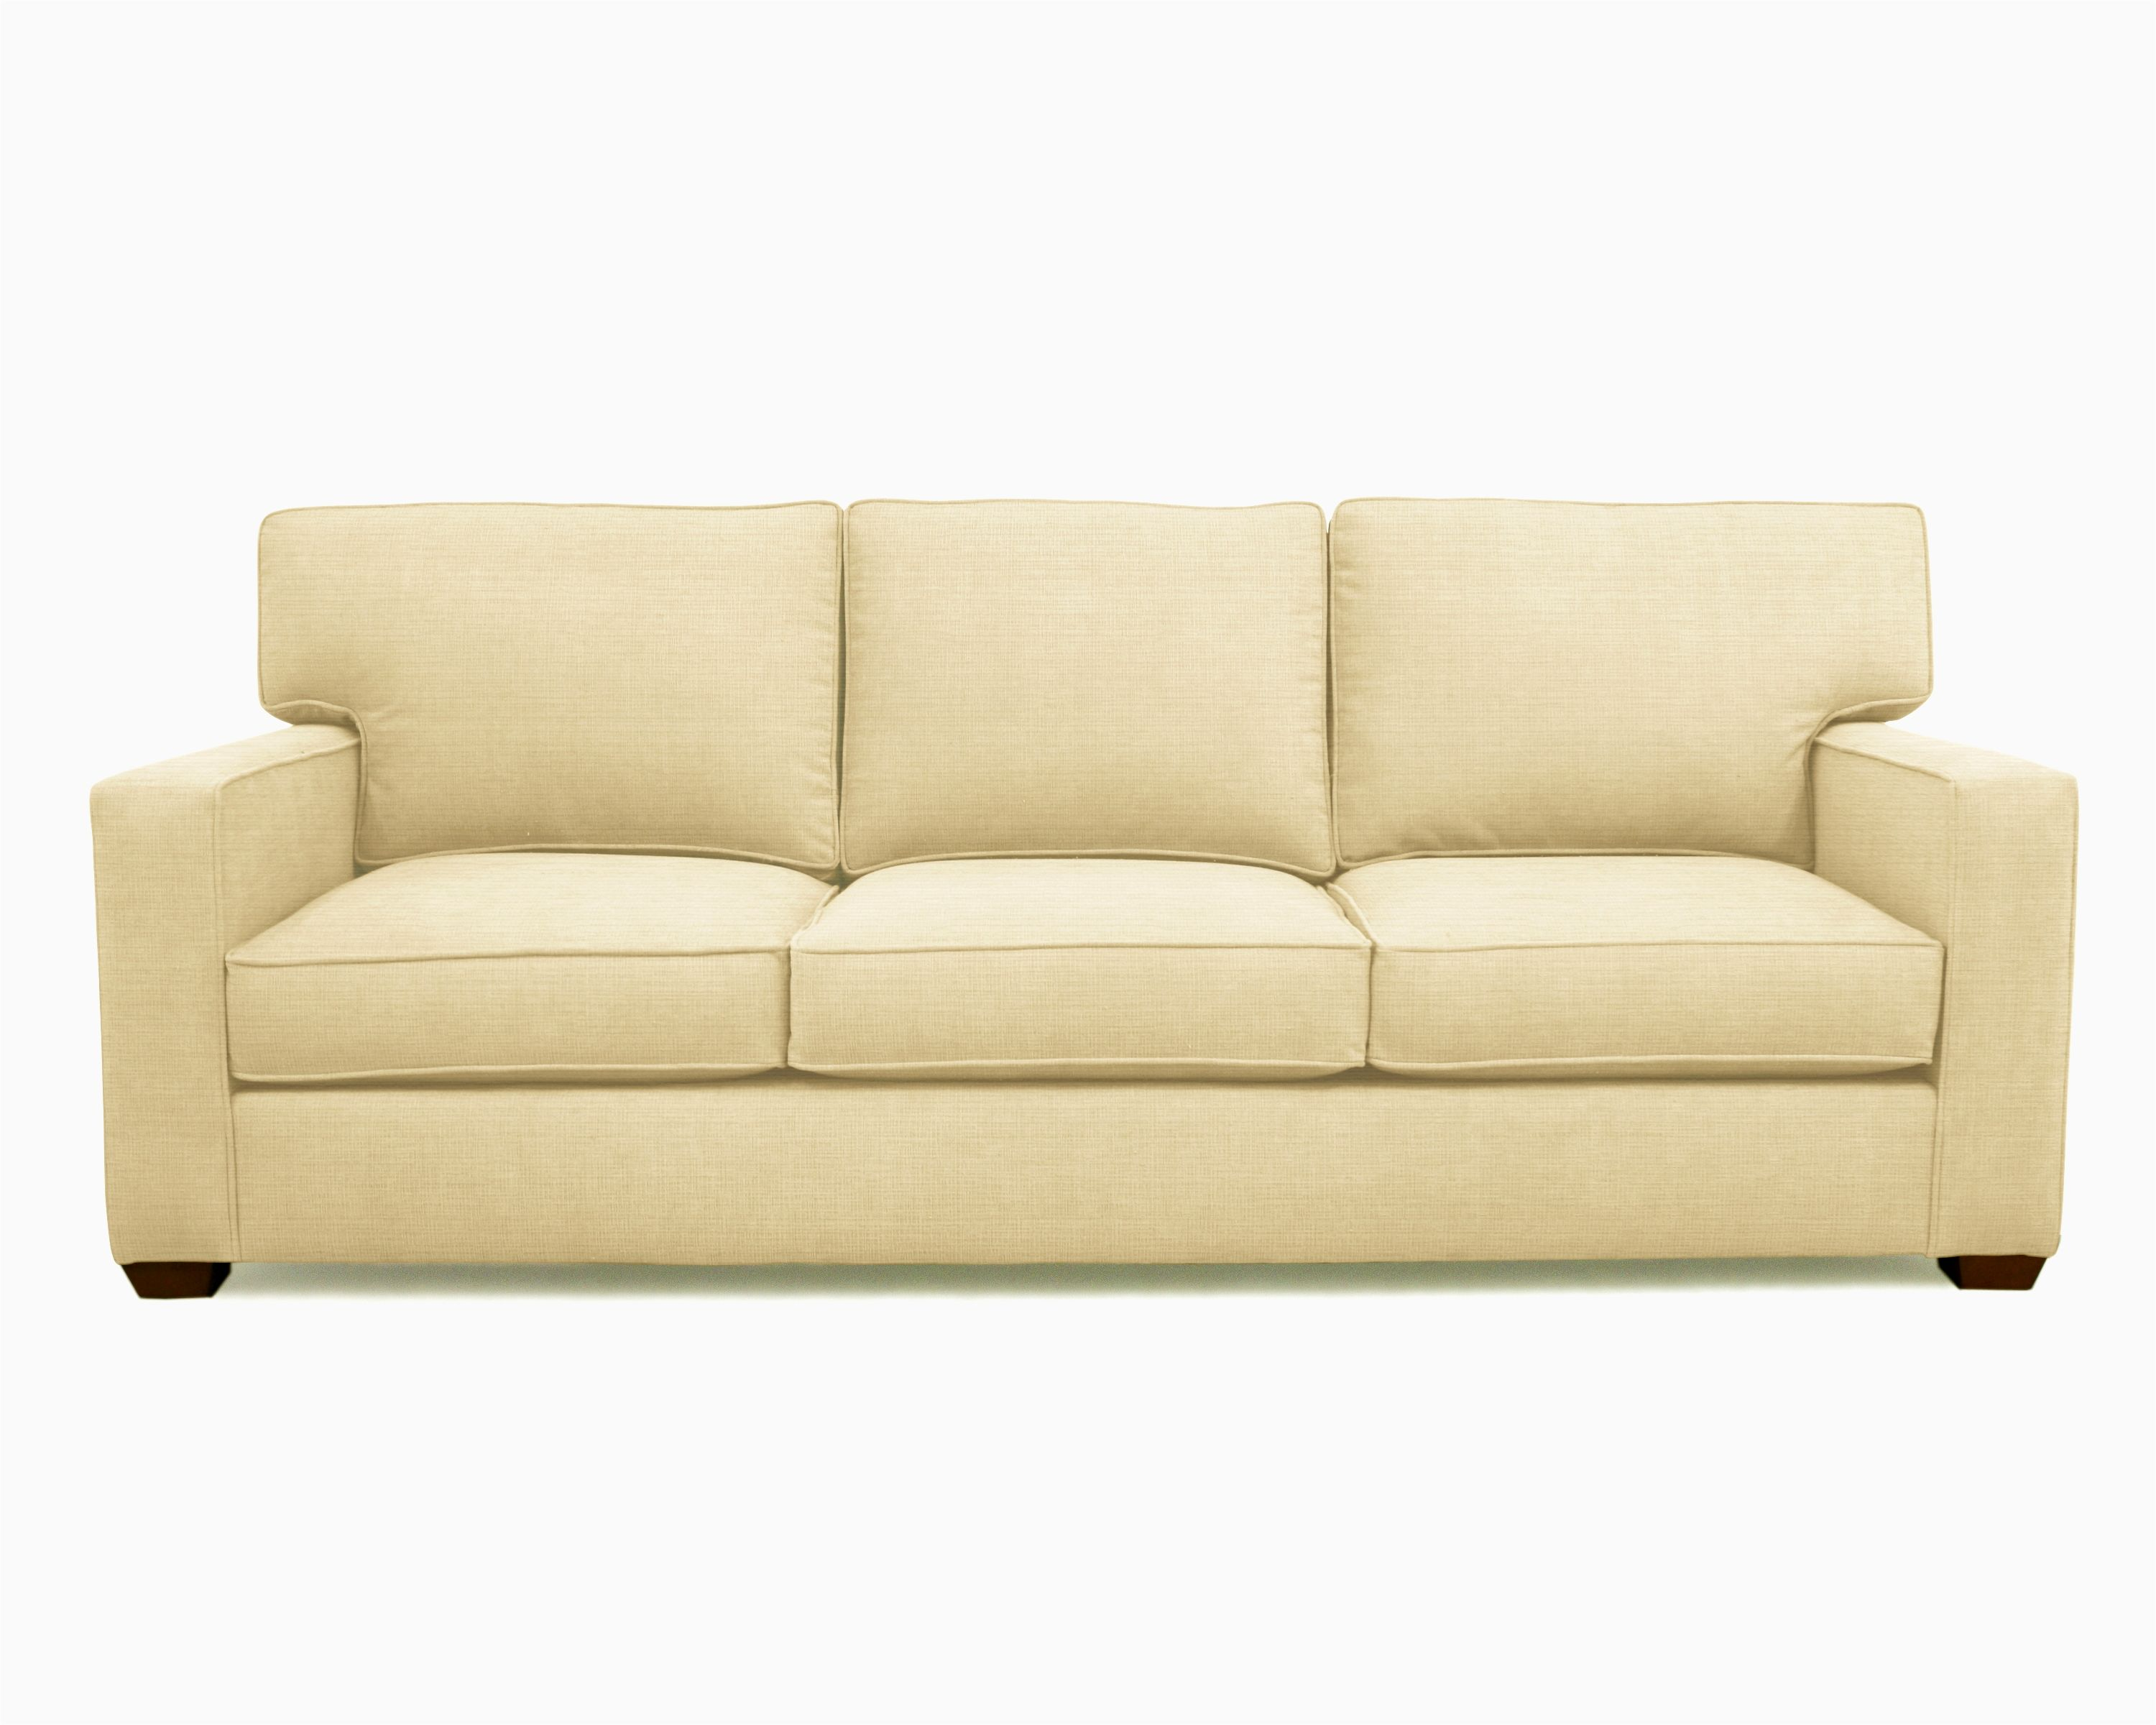 wonderful chaise sectional sofa picture-Luxury Chaise Sectional sofa Décor